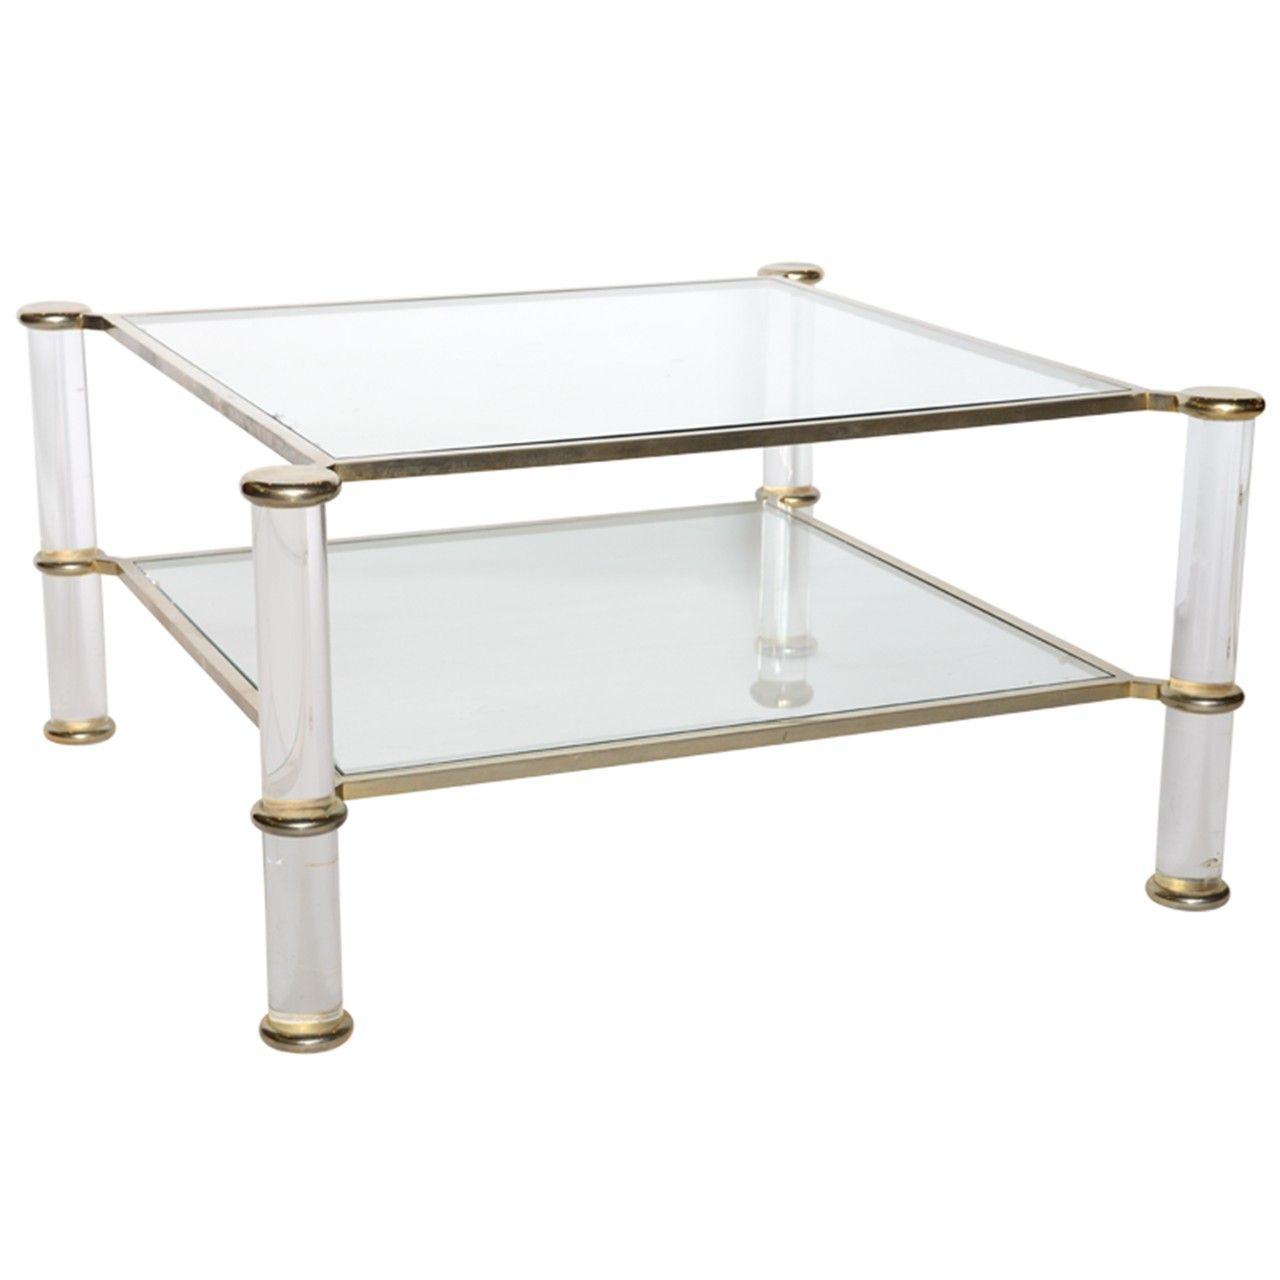 1stdibs A Lucite Glass Chrome And Brass Low Table Attributed To Charles Hollis Jones Coffee Table Coffee Table Inspiration Fancy Coffee Table [ 1280 x 1280 Pixel ]